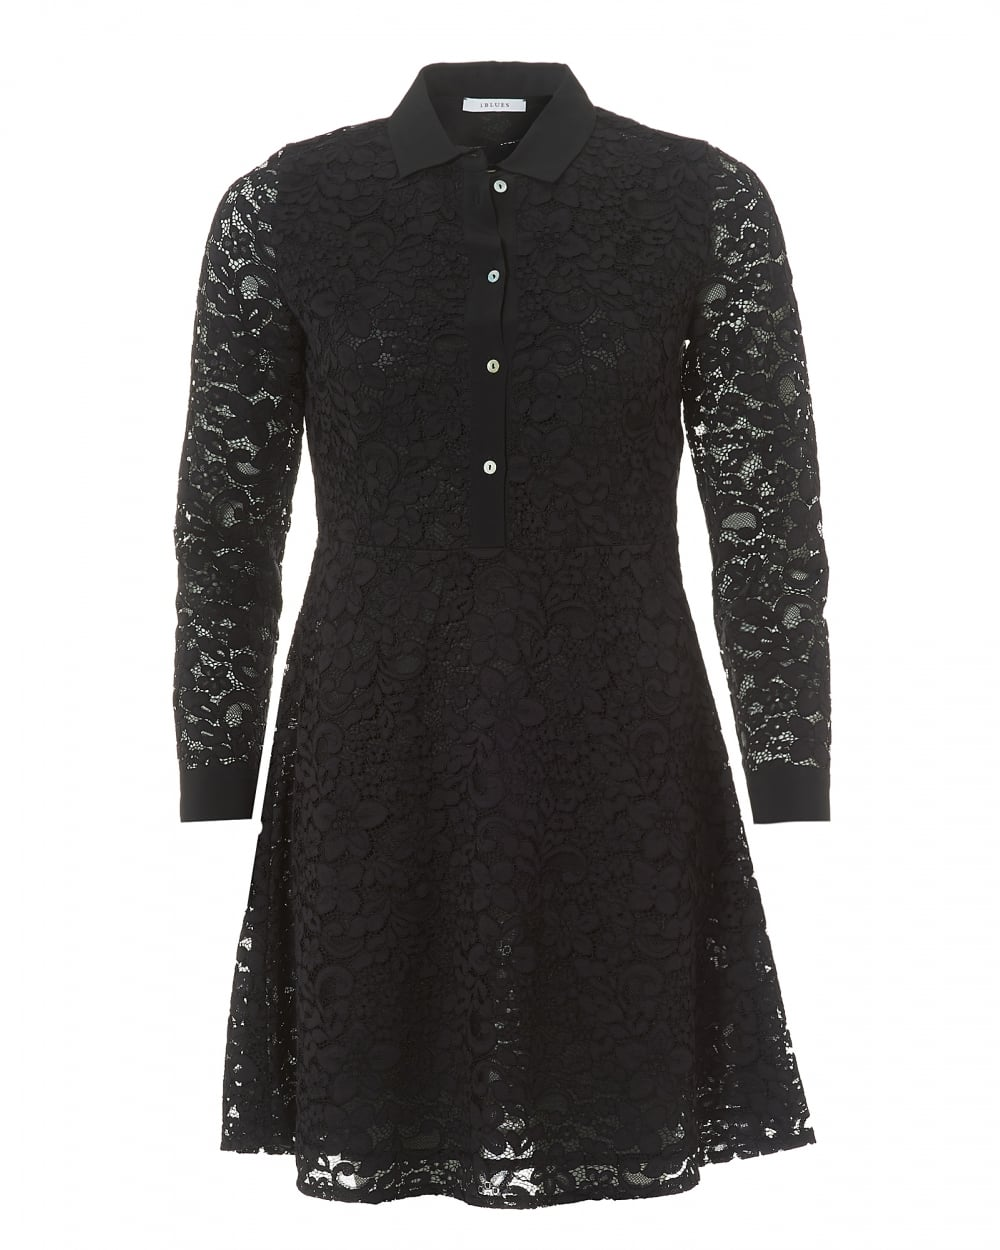 Iblues Womens Black Lace Collared Long Sleeve Dress